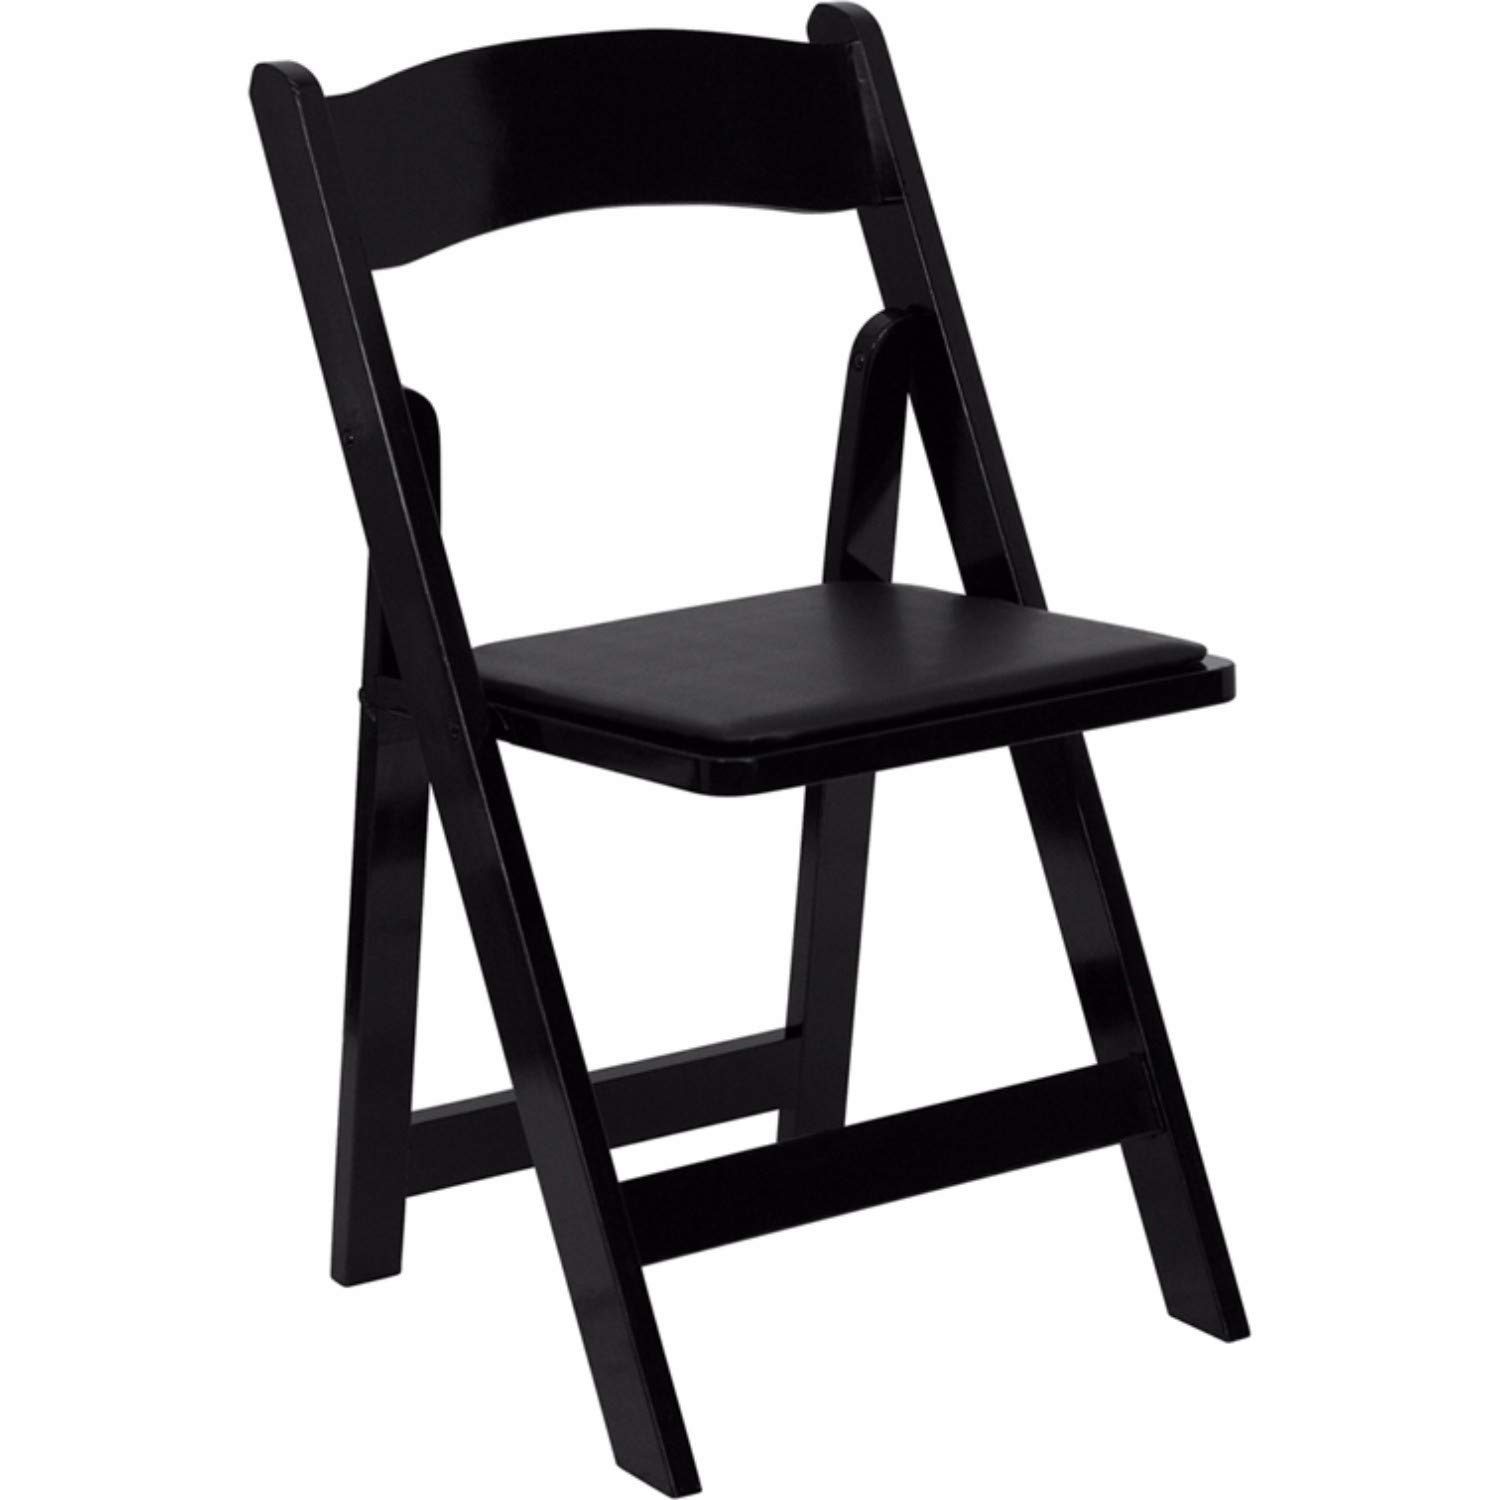 Offex OFX-89937-FF Wood Folding Chair with Vinyl Padded Seat - Black